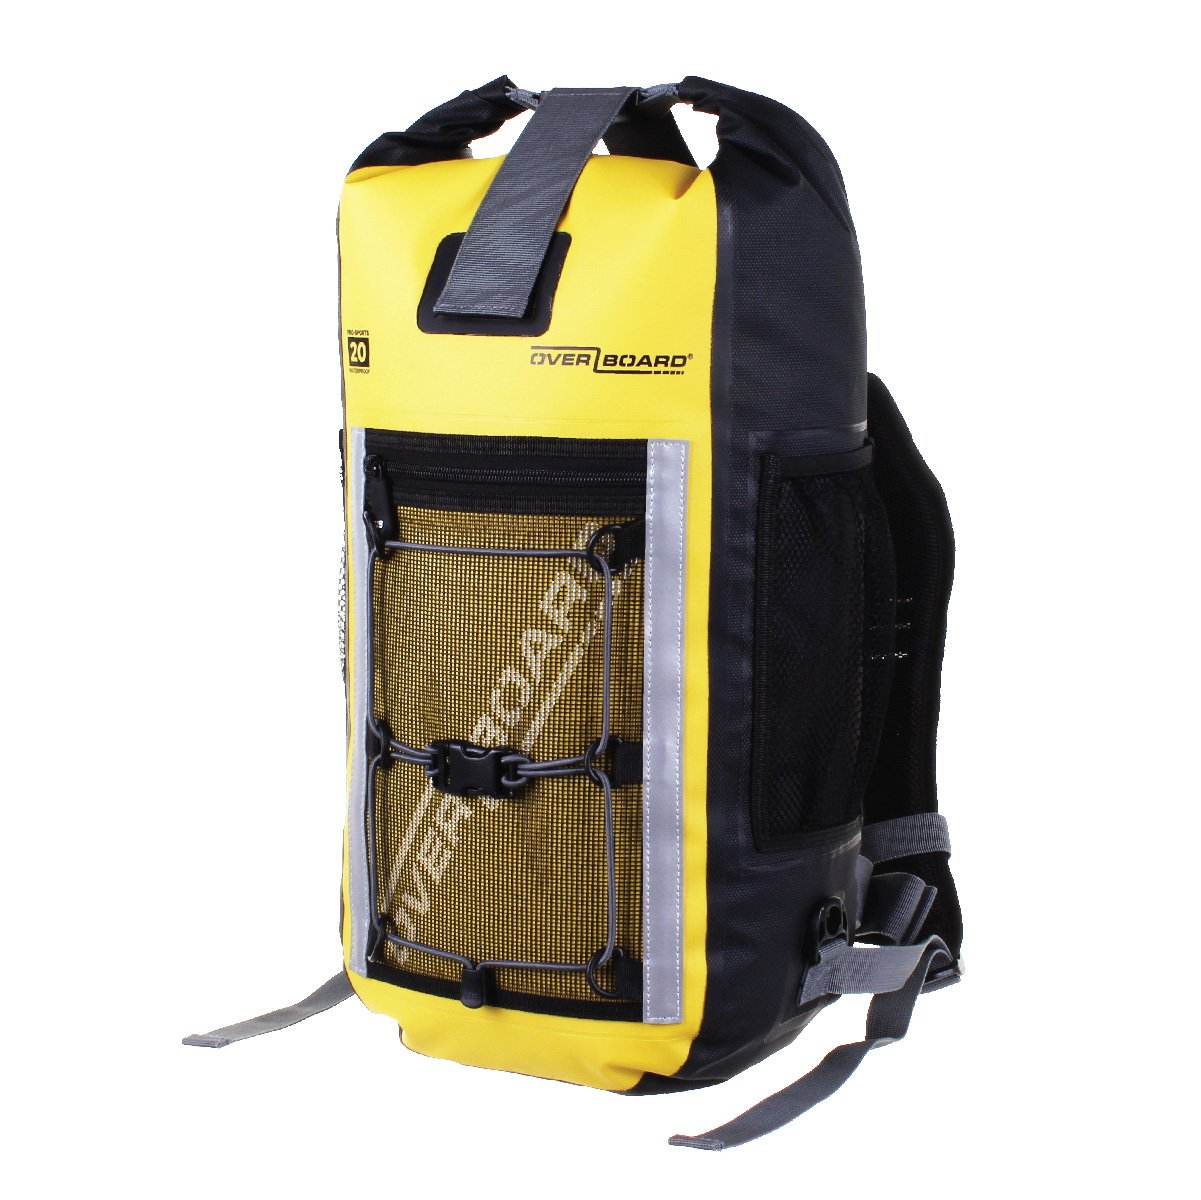 OverBoard Waterproof Pro-Sports Backpack, Yellow, 20-Liter